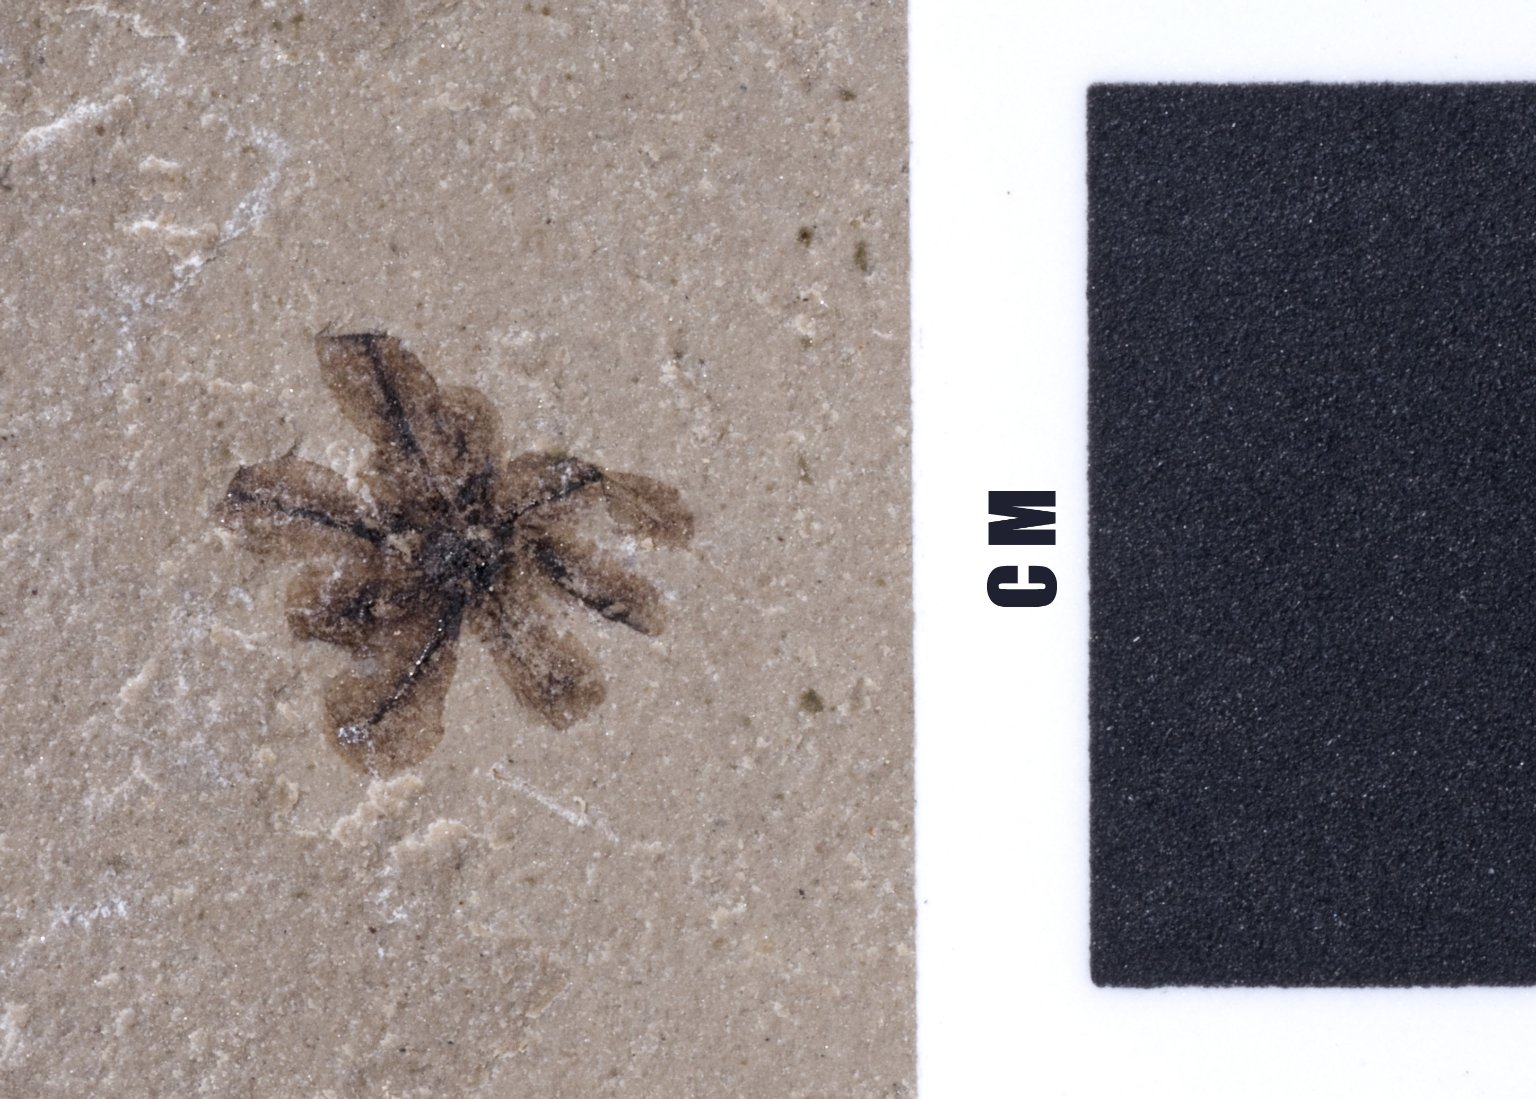 Fossil flower, PC133